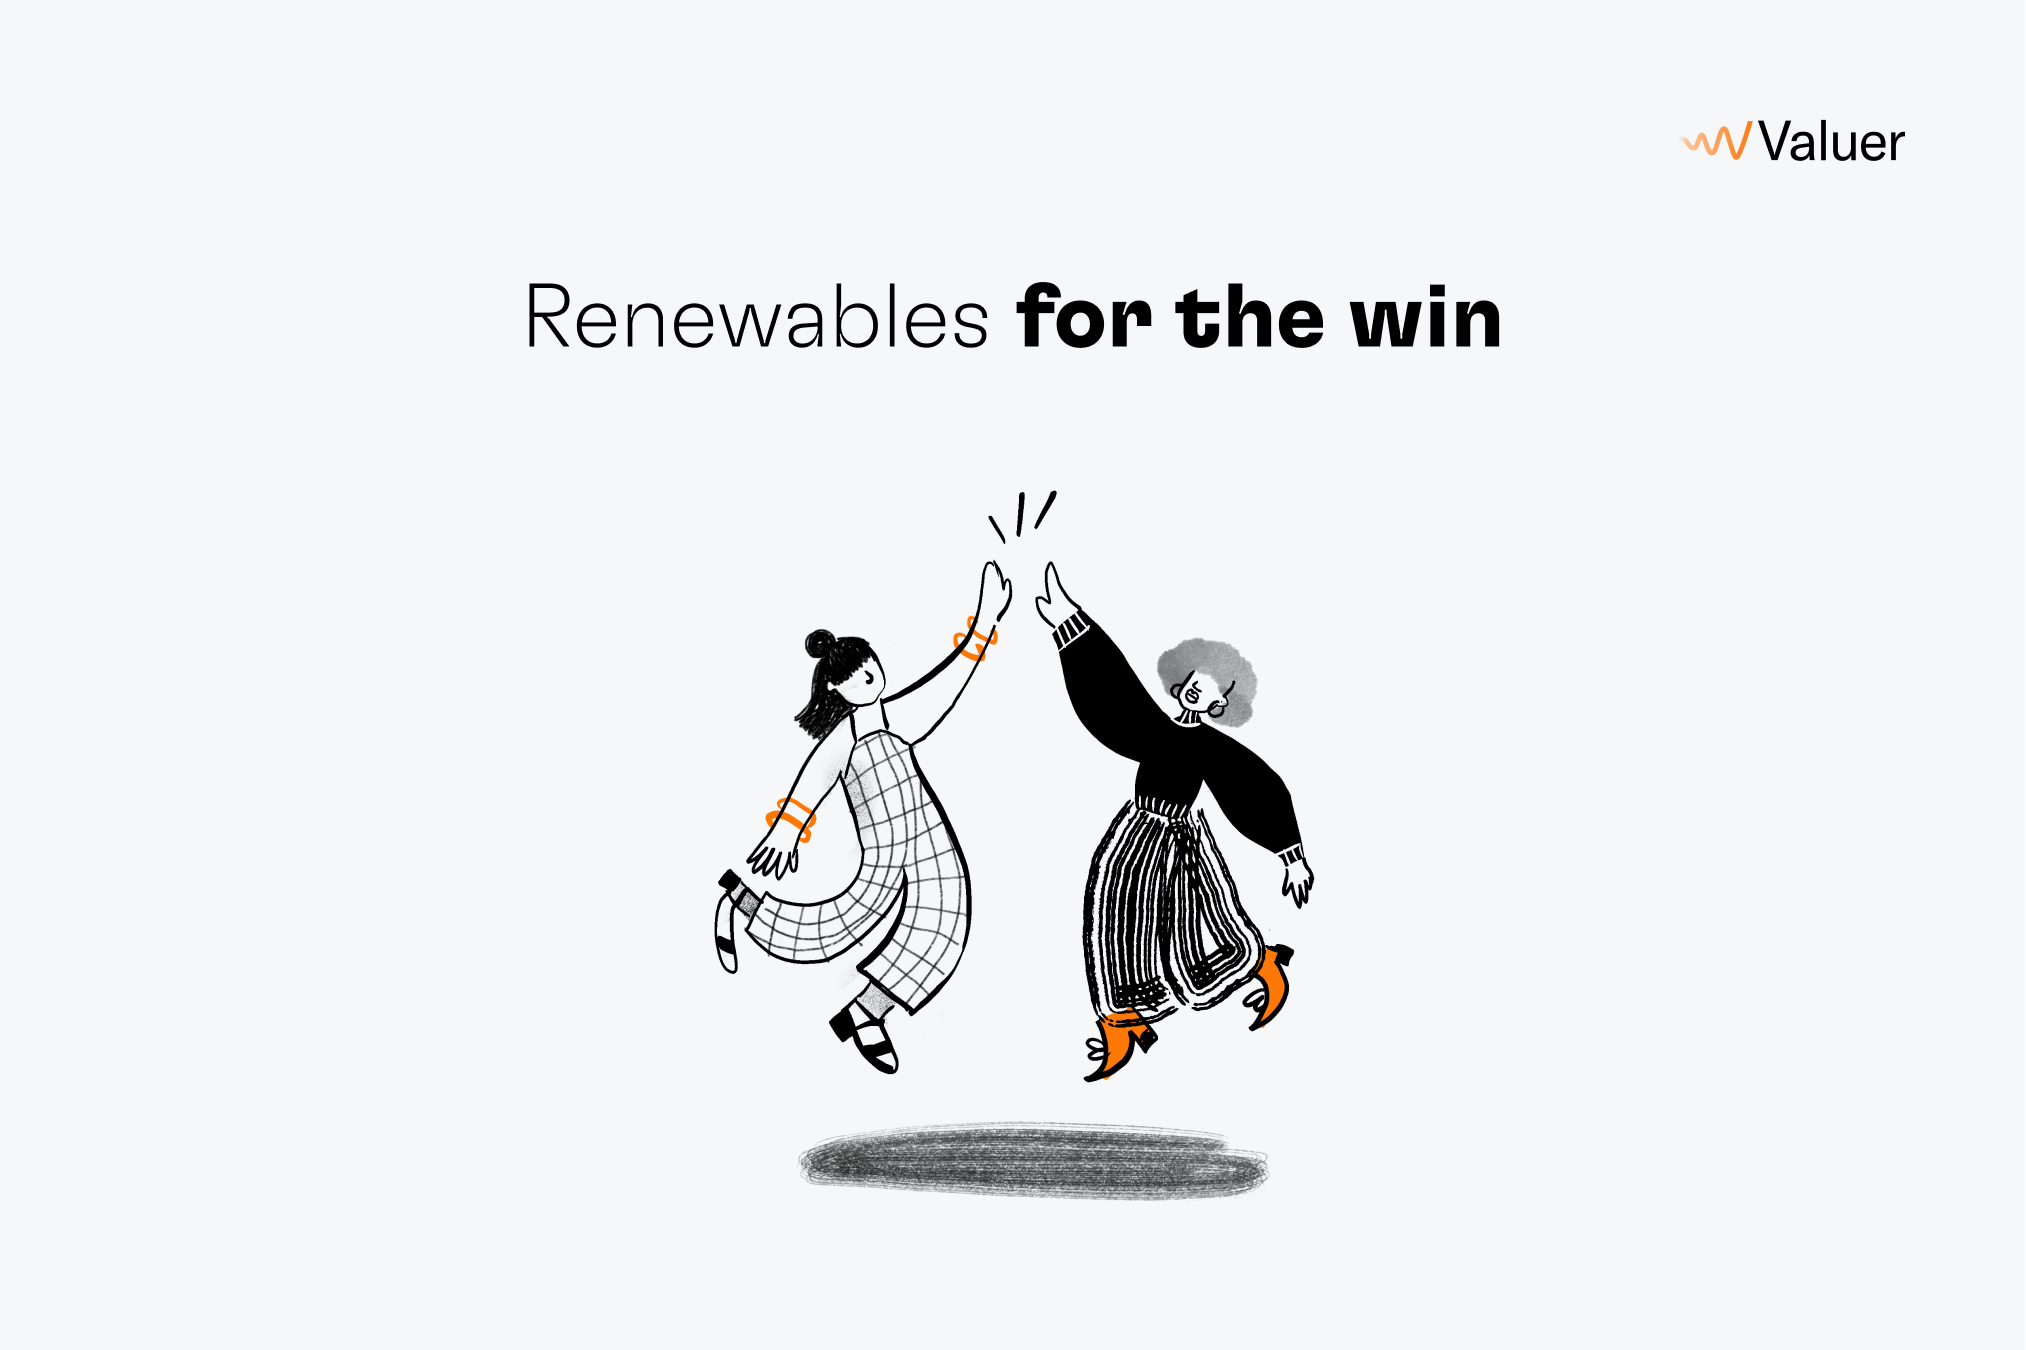 Renewables for the win